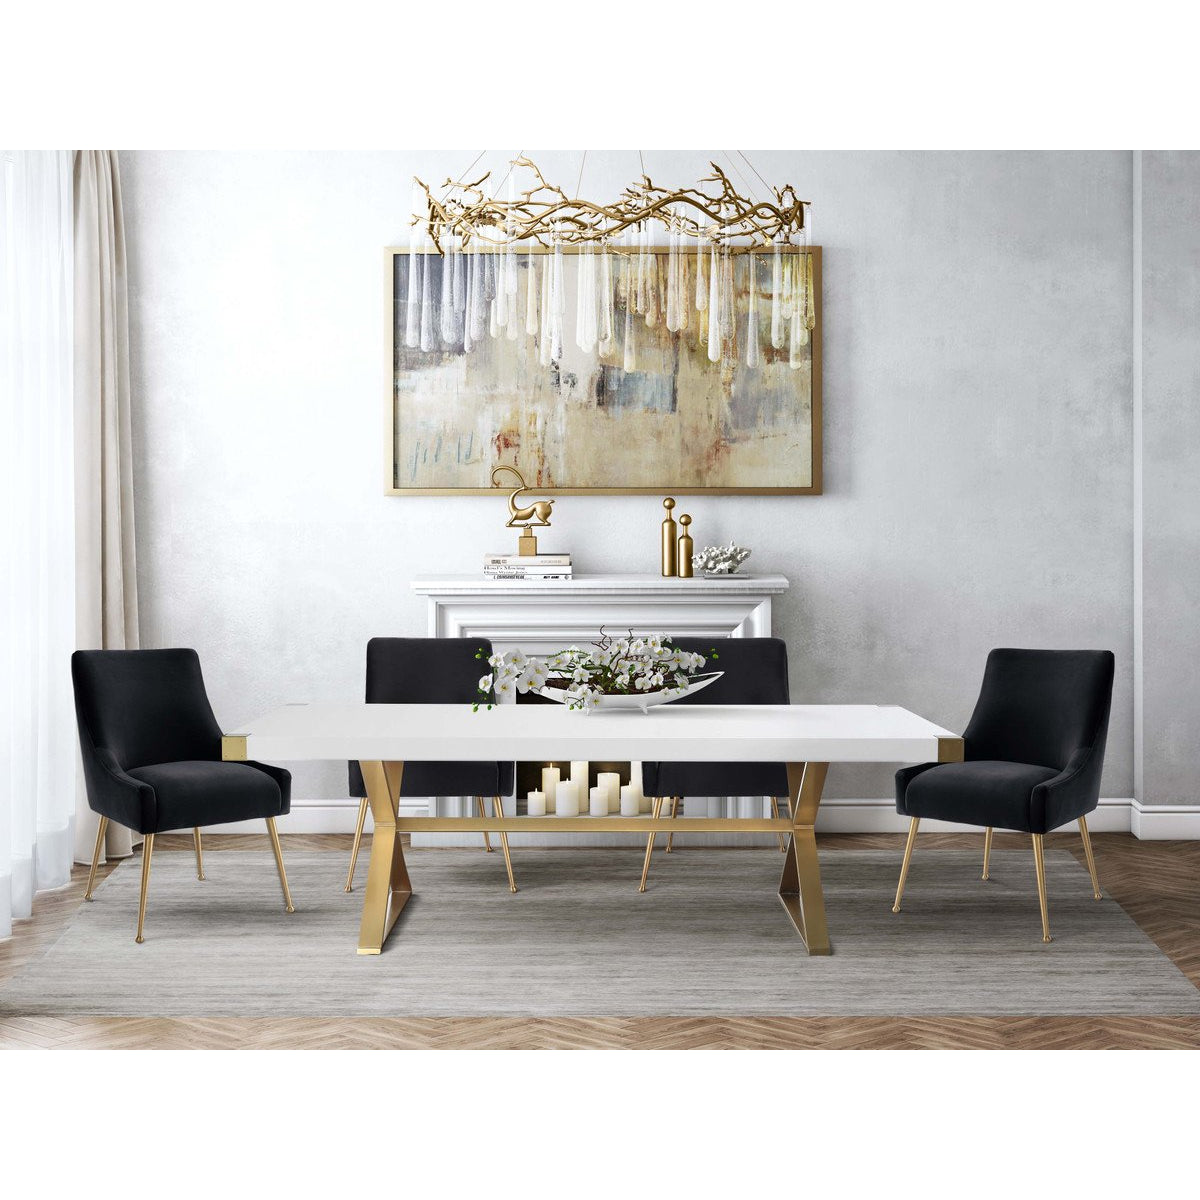 Miraculous Tov Furniture Modern Adeline White Gold Rectangular Dining Caraccident5 Cool Chair Designs And Ideas Caraccident5Info